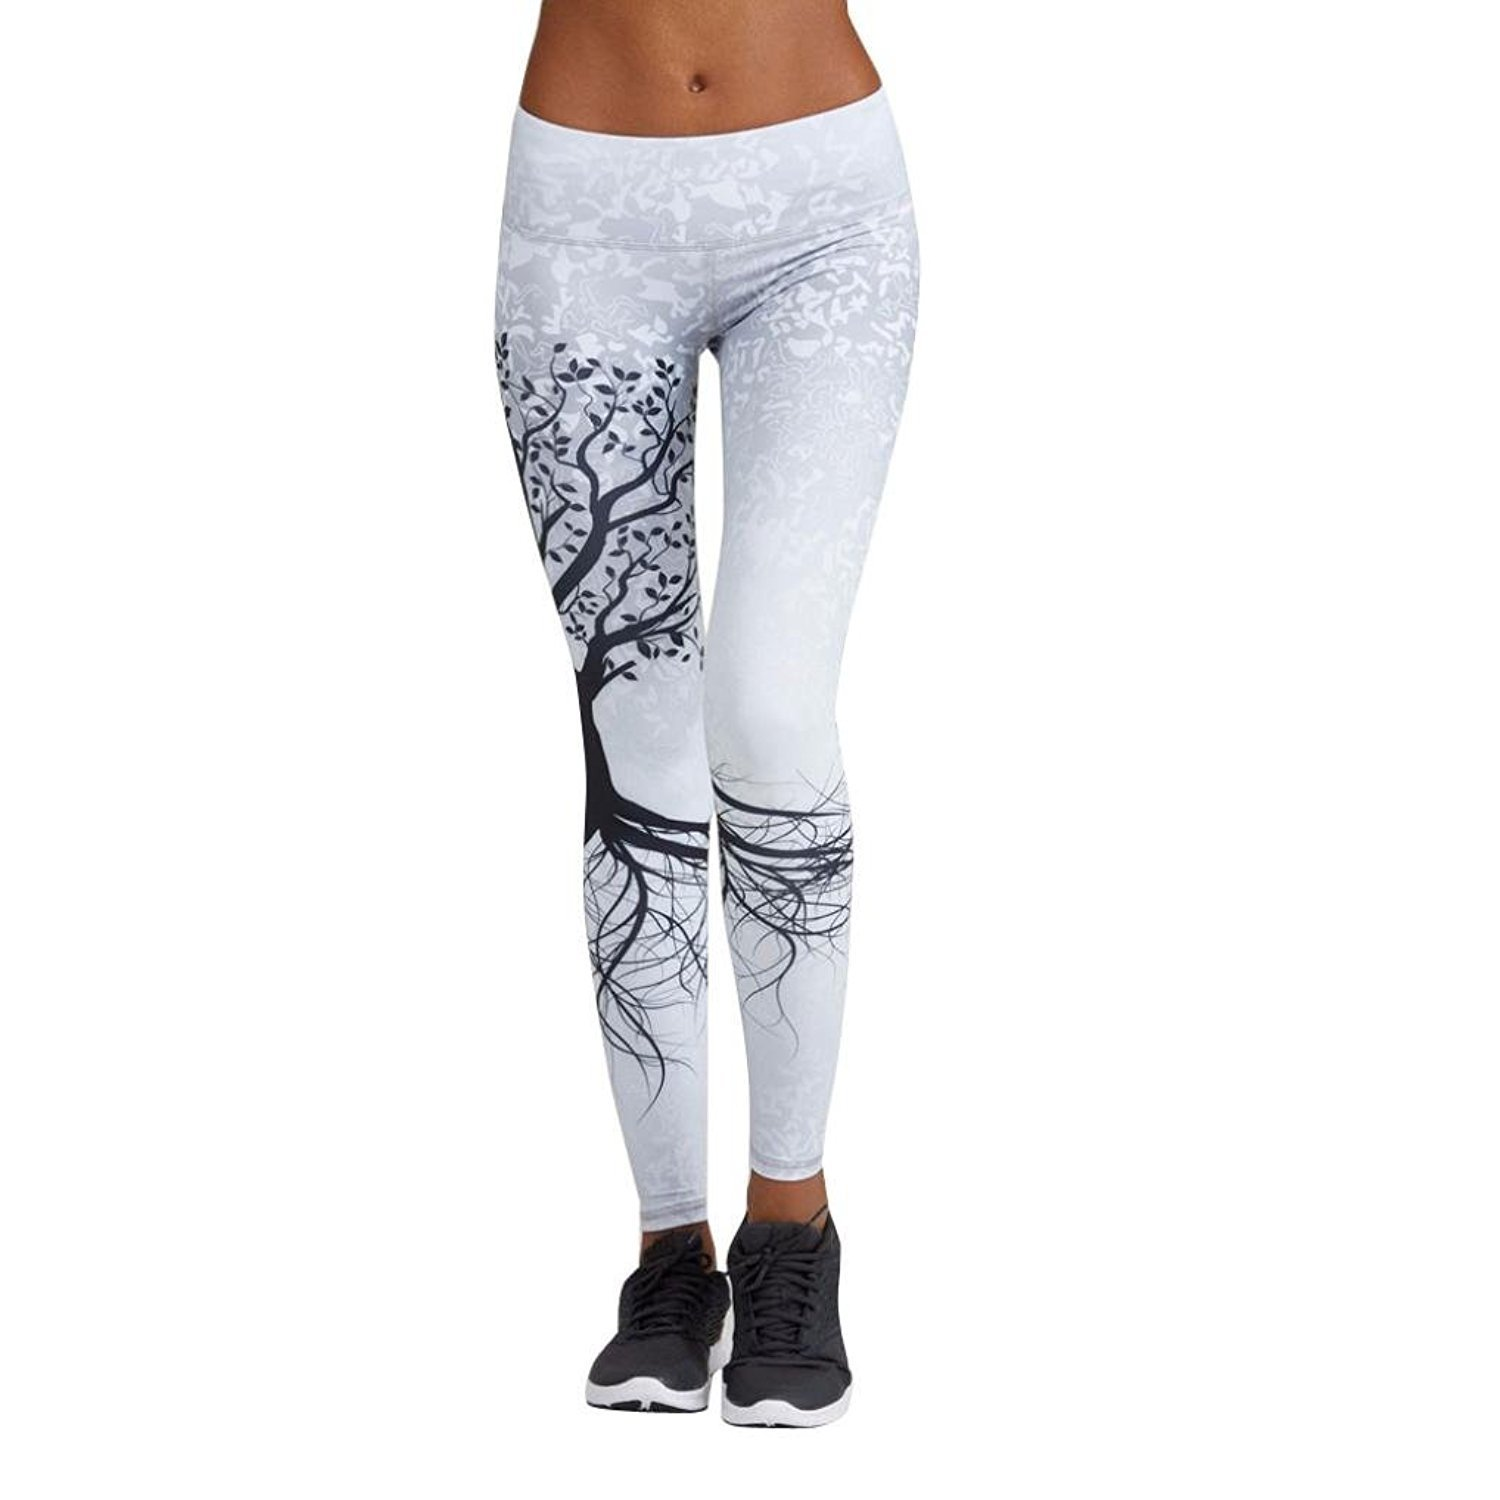 Women's 3D Tree Digital Print High Waist Skinny Push Up Leggings Fitness Yoga Pants